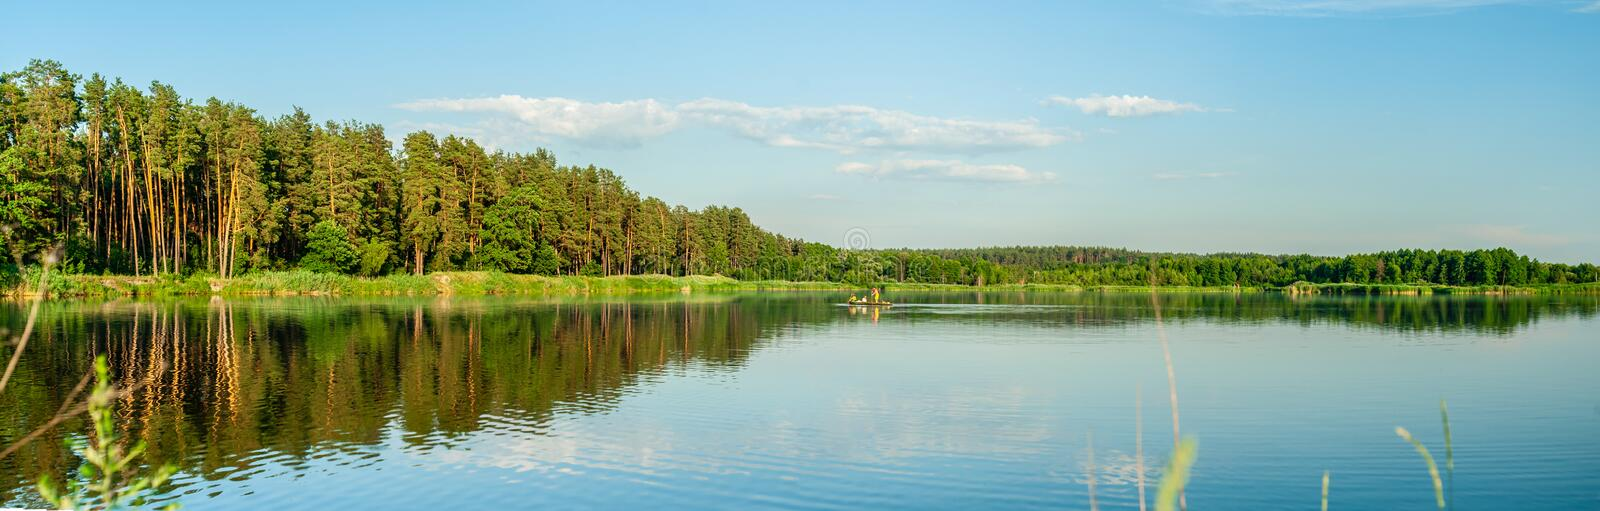 3 persons on the lonely boat in the middle of the lake that reflects forrest, under blue sky with clouds, panoramic background. Three persons on the lonely boat royalty free stock photo